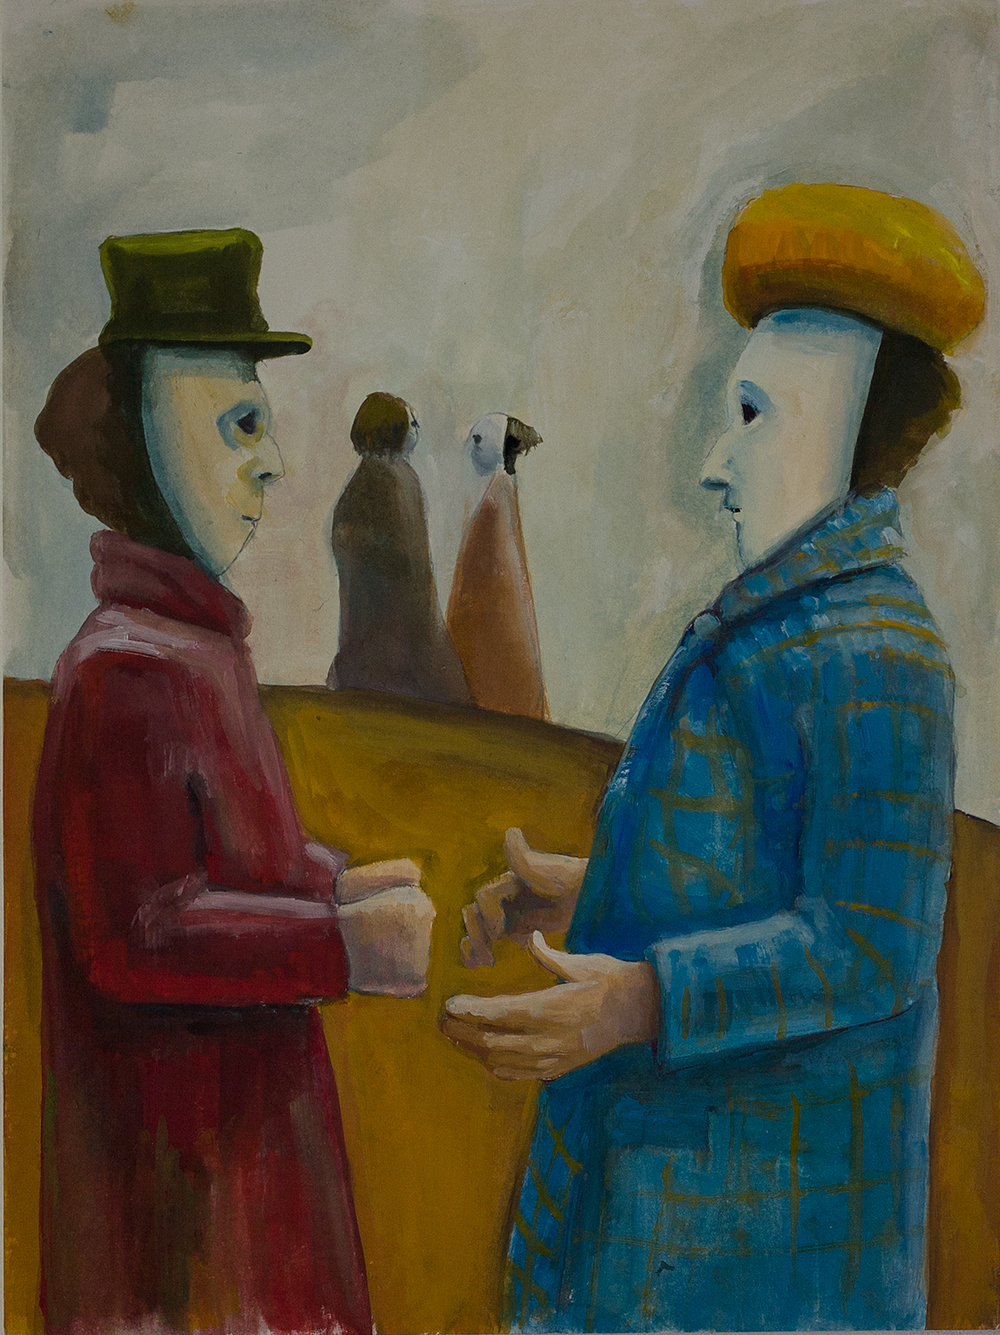 Study - Two figures with hats